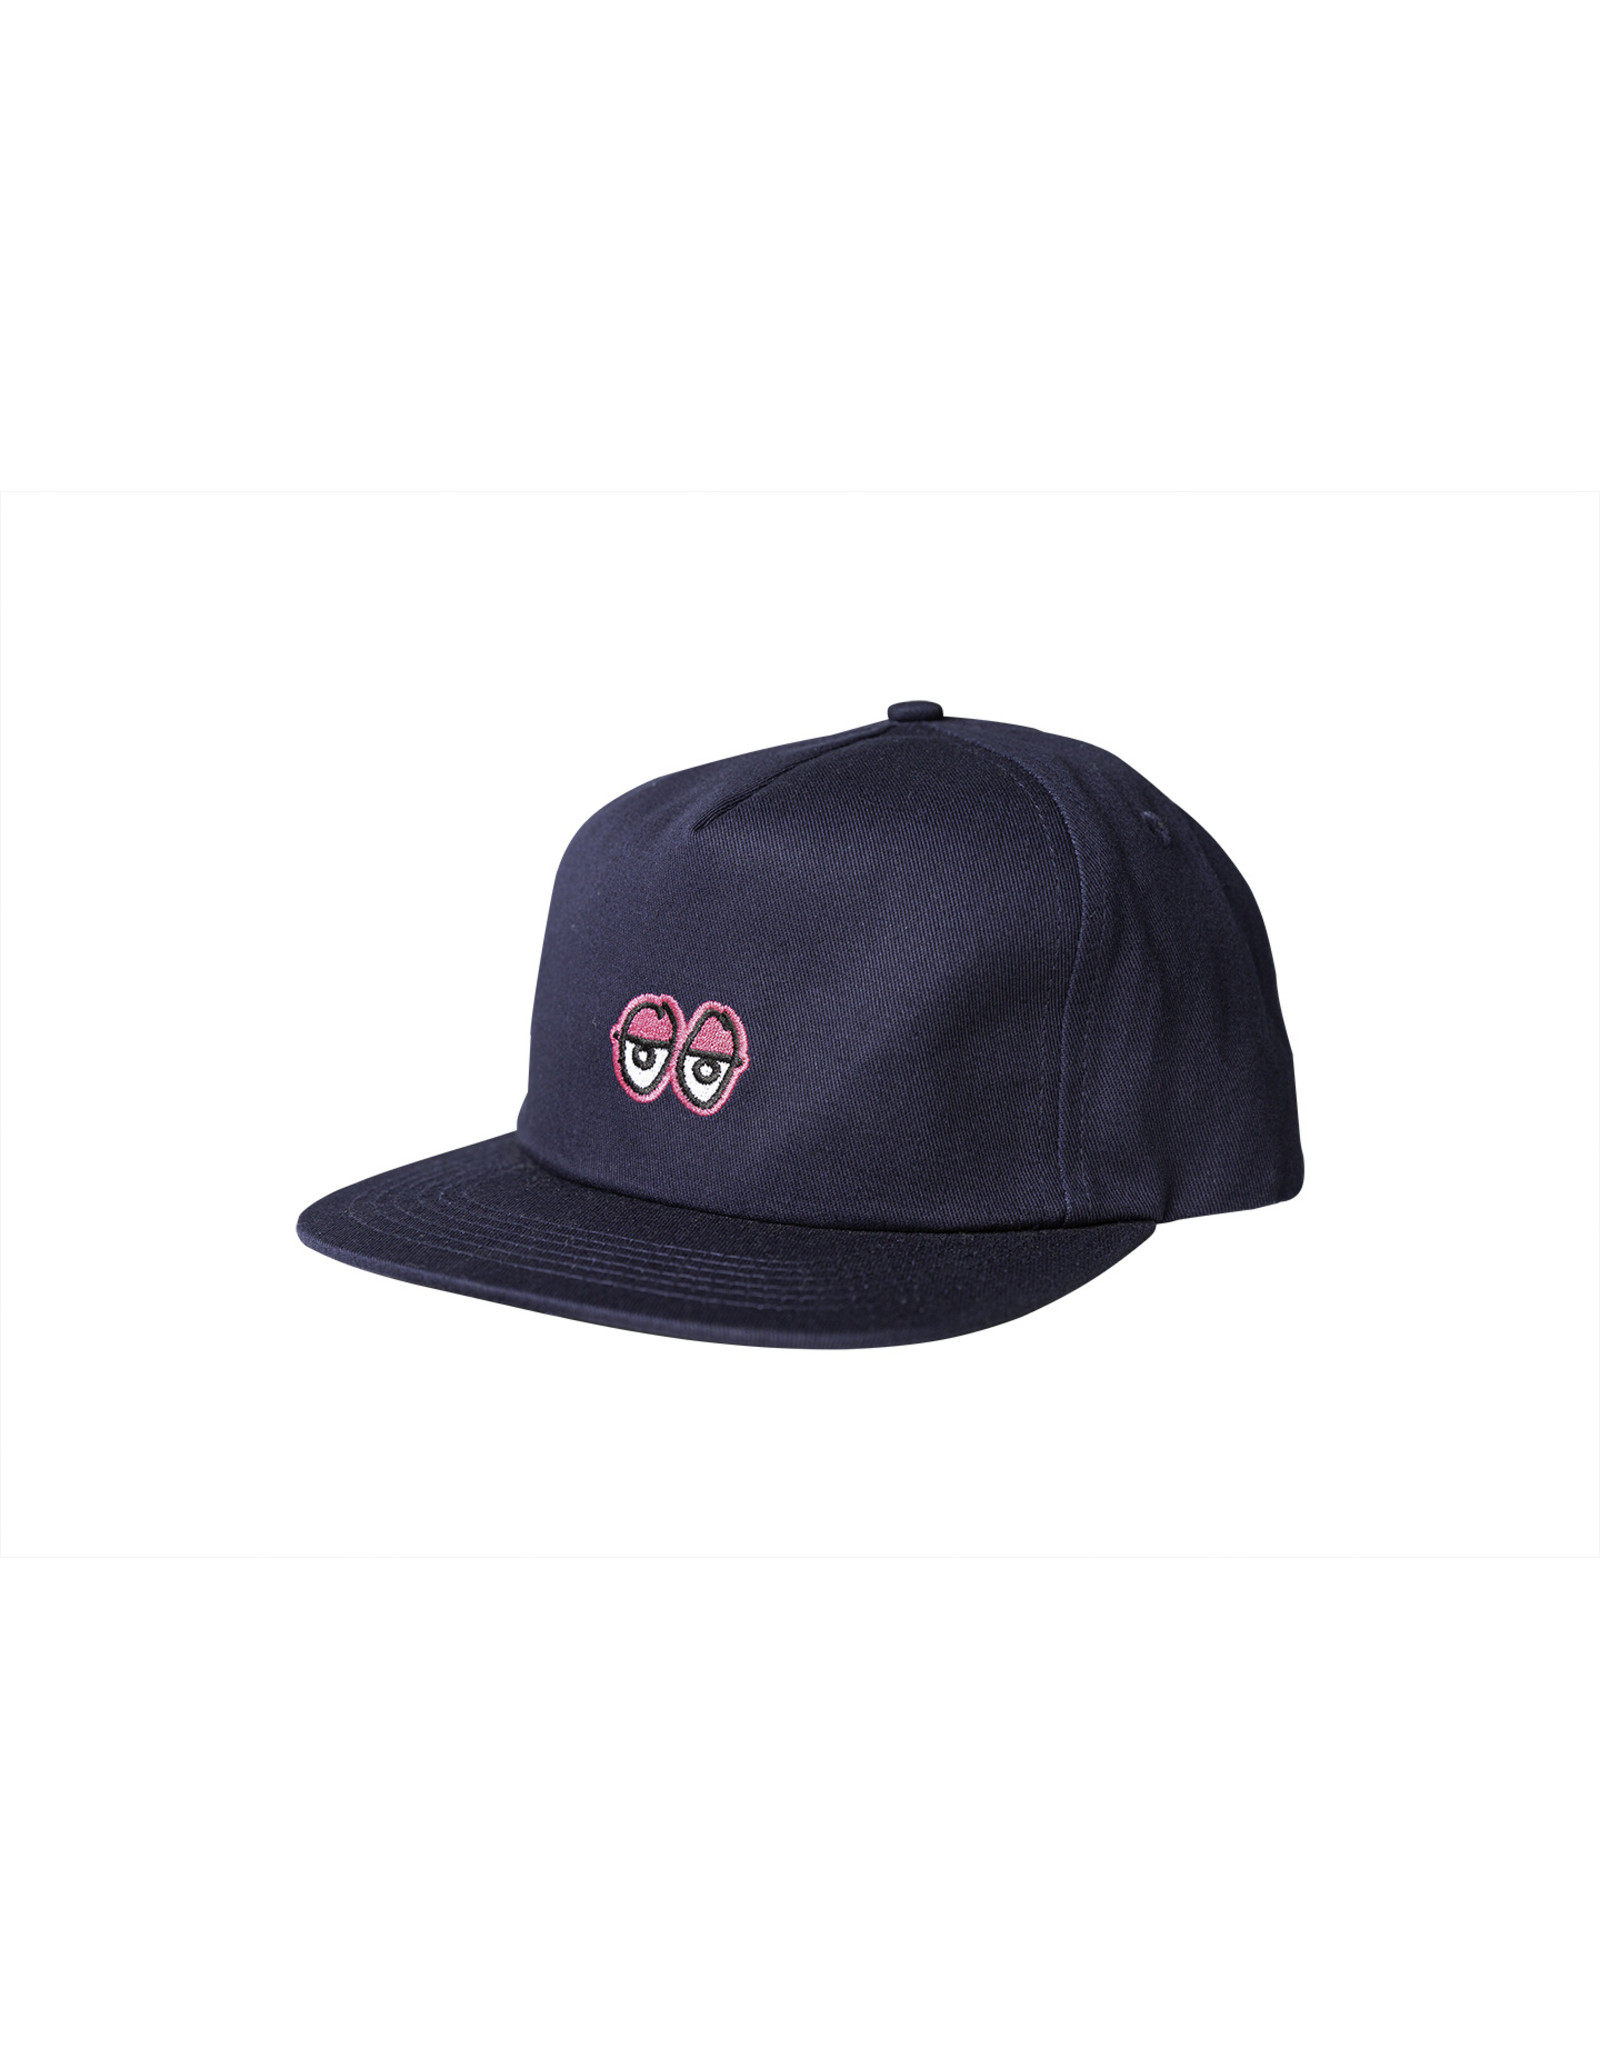 KROOKED KROOKED - EYES SNAPBACK - NAVY